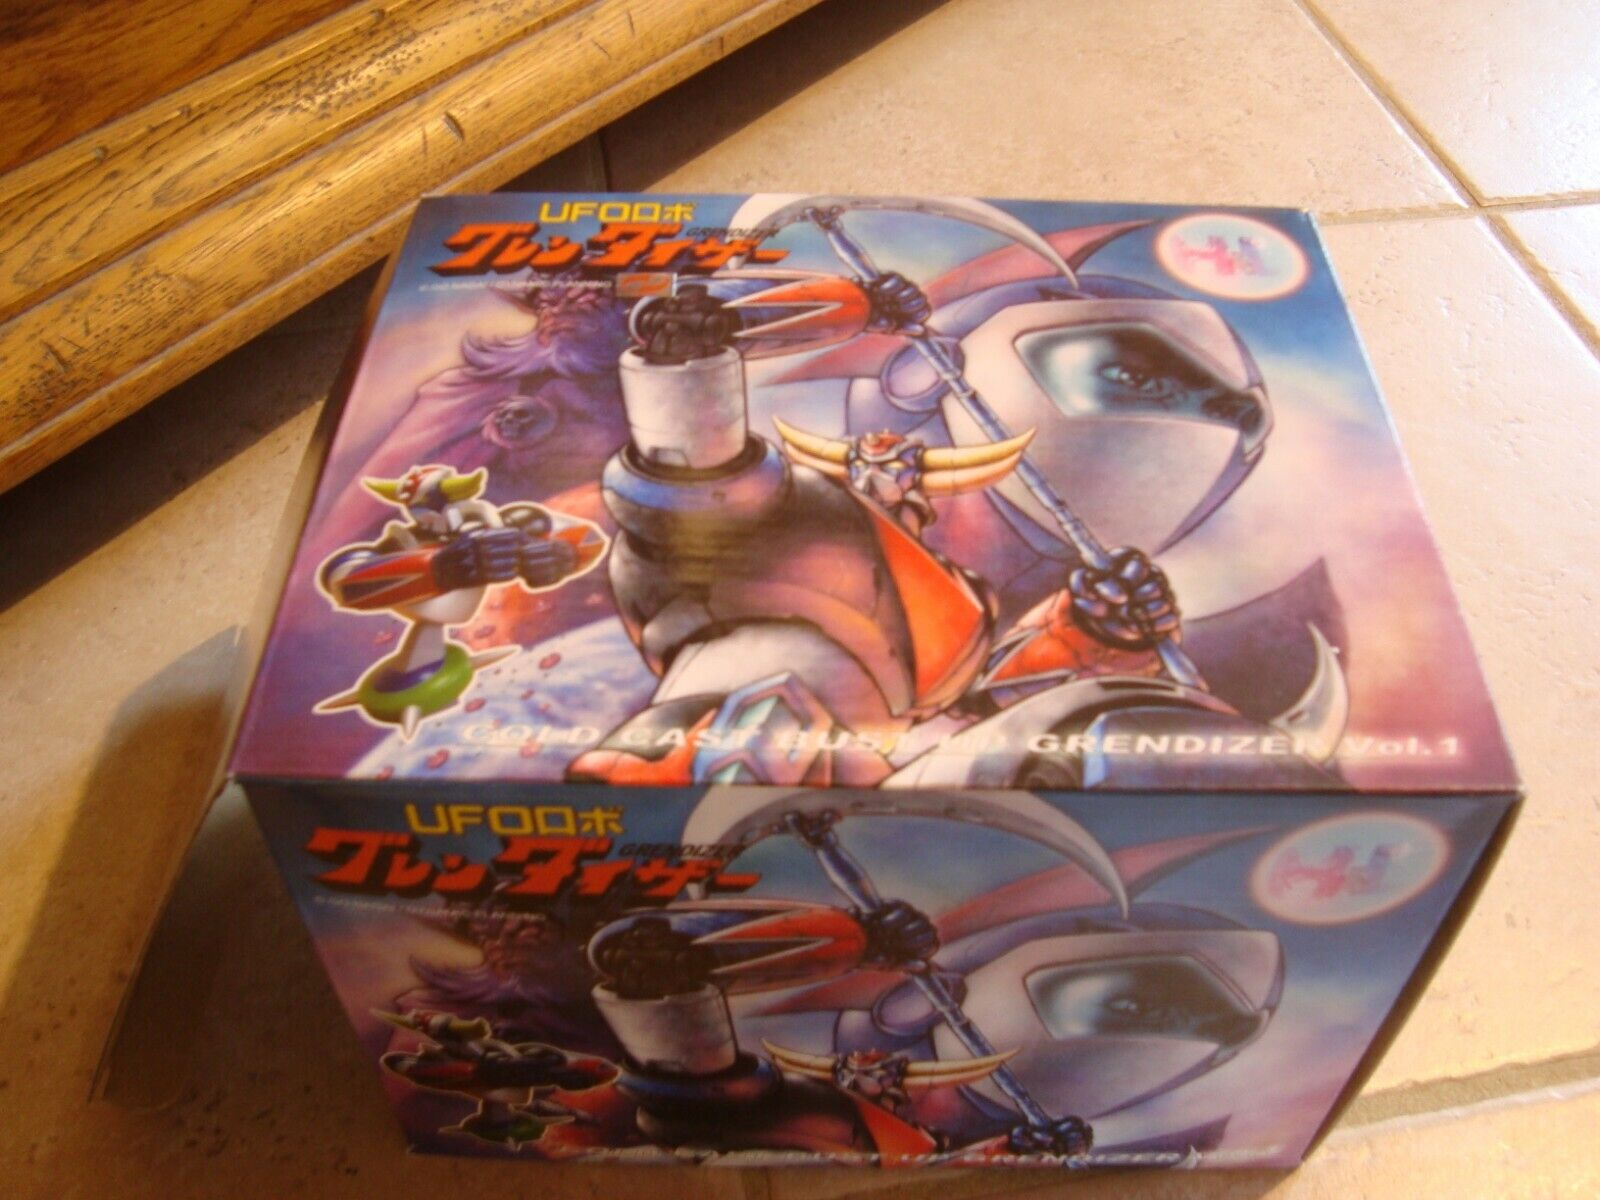 GoldORAK  GRENDIZER GoldRAKE SHOGUN SHOGUN SHOGUN WARRIORS HIGH DREAM POPY  MAZINGER hl pro ff6983